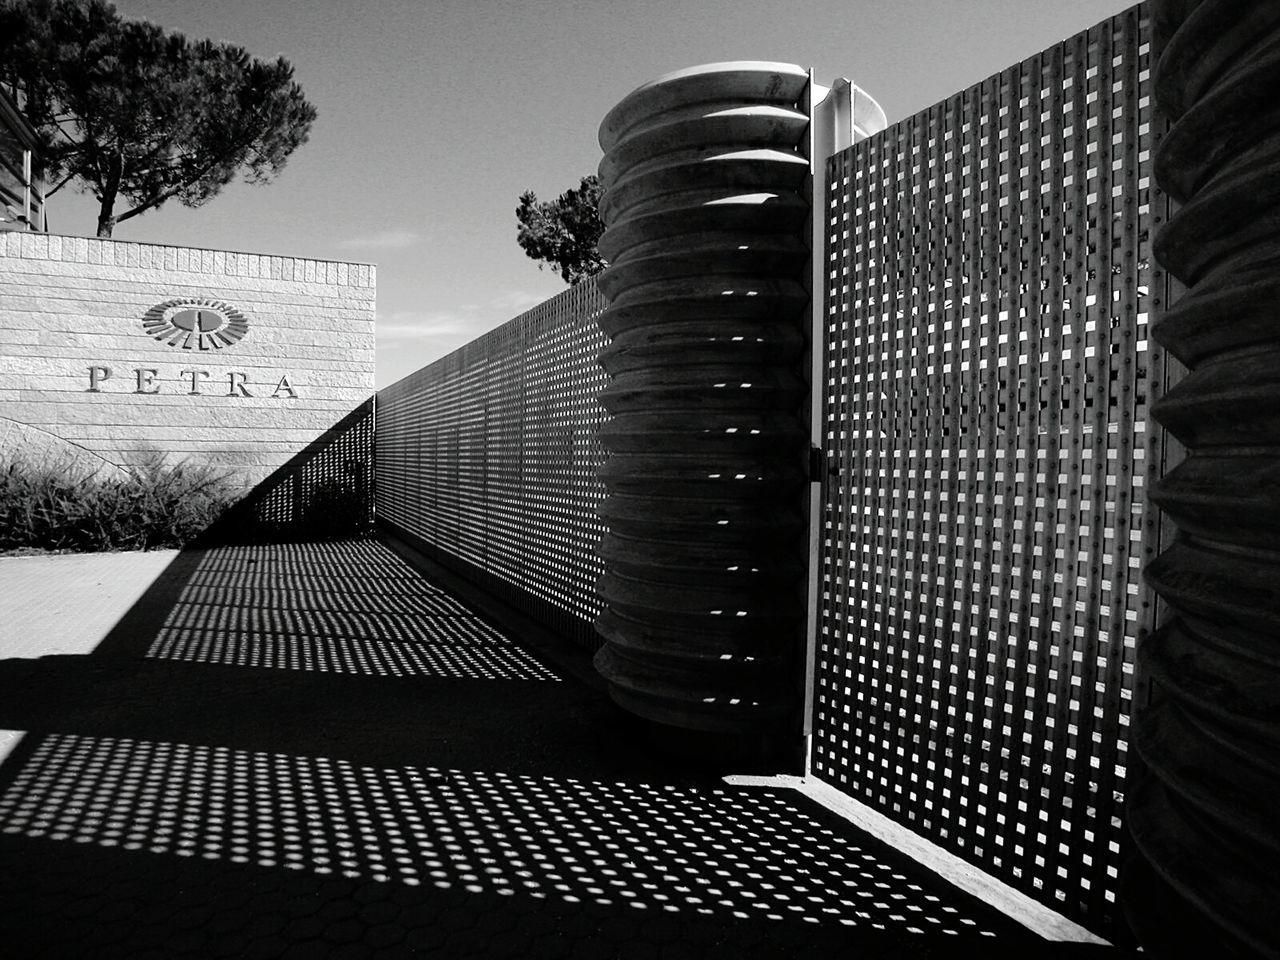 Darkness And Light Cantina Petra Black & White Shadows & Lights Mario Botta Tuscany Architecture Winery Precision The Architect - 2015 EyeEm Awards The Architect - 2016 EyeEm Awards